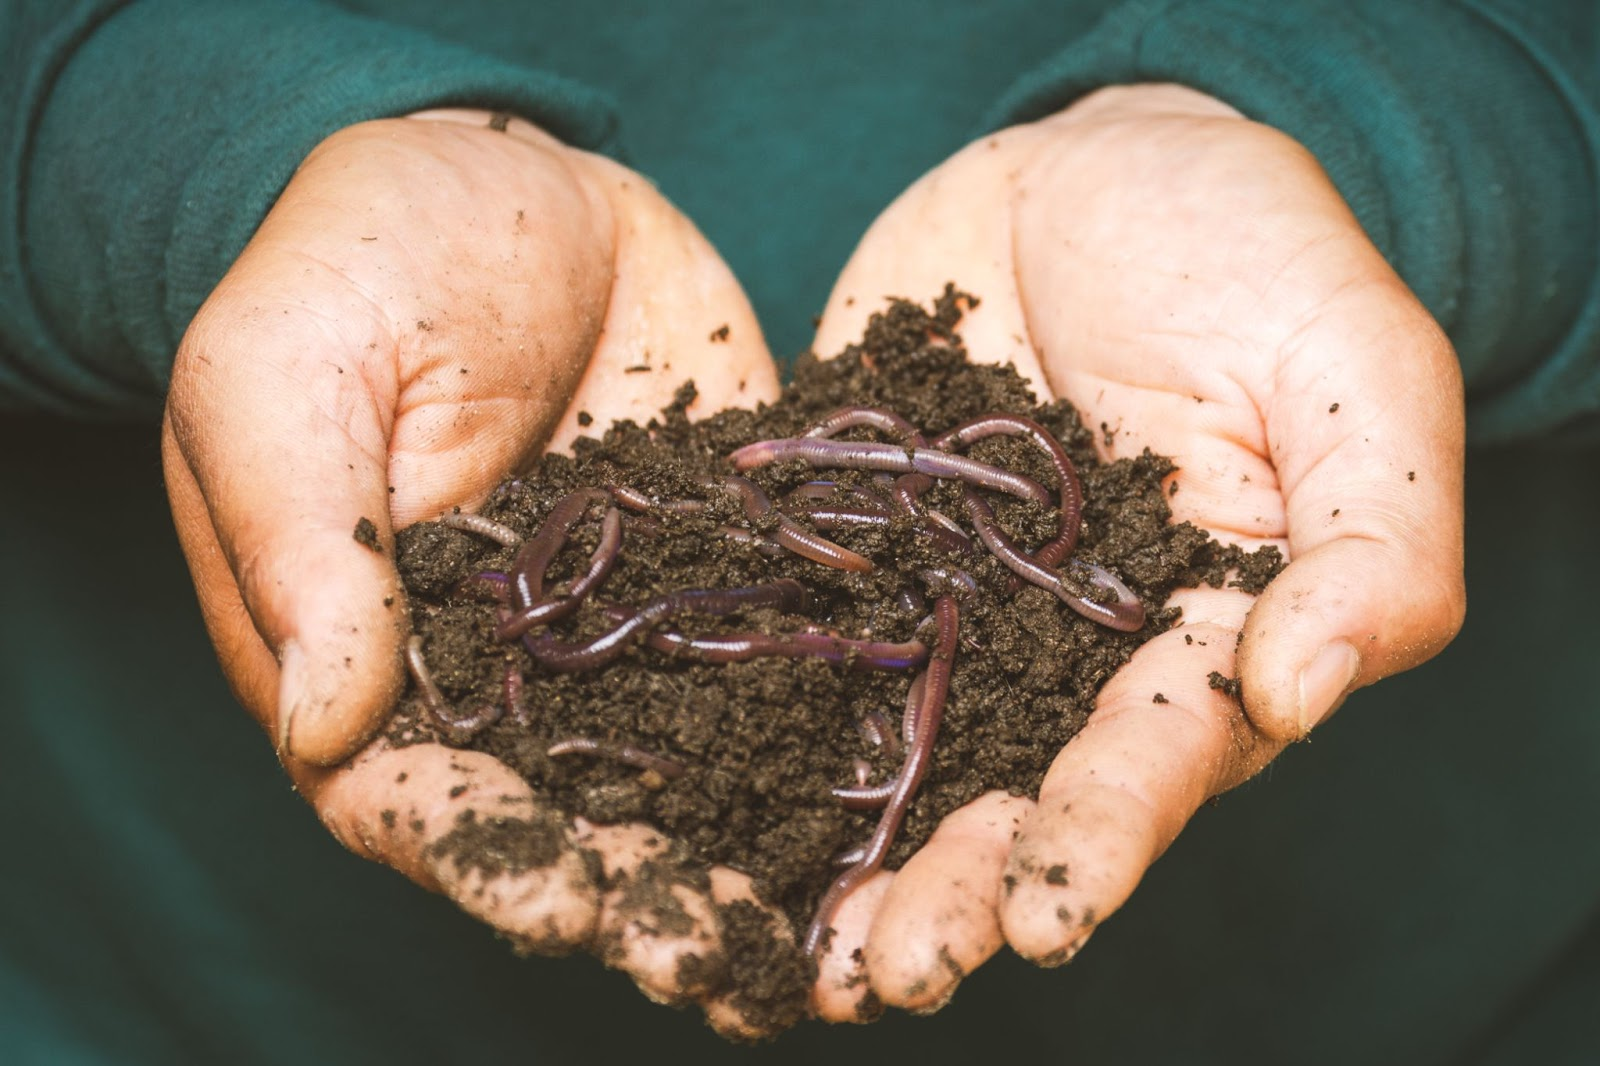 worms and soil on a man's hand